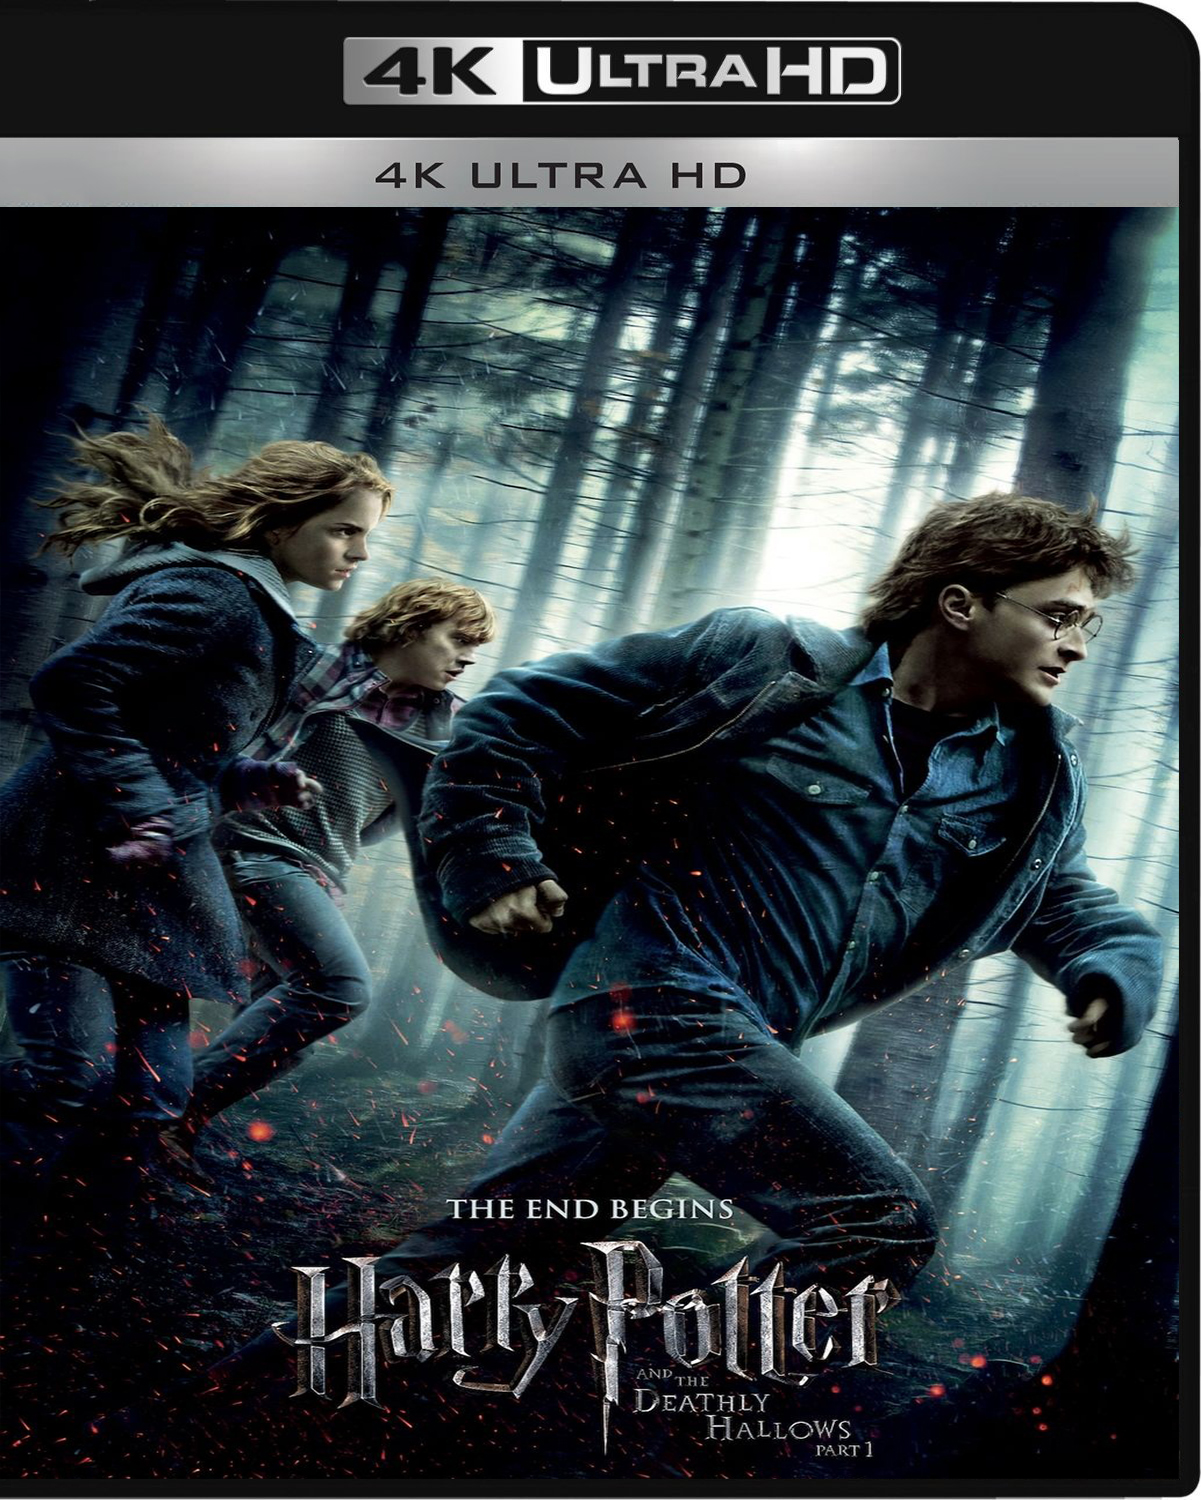 Harry Potter and the Deathly Hallows: Part I [2010] [UHD] [2160p] [Latino]